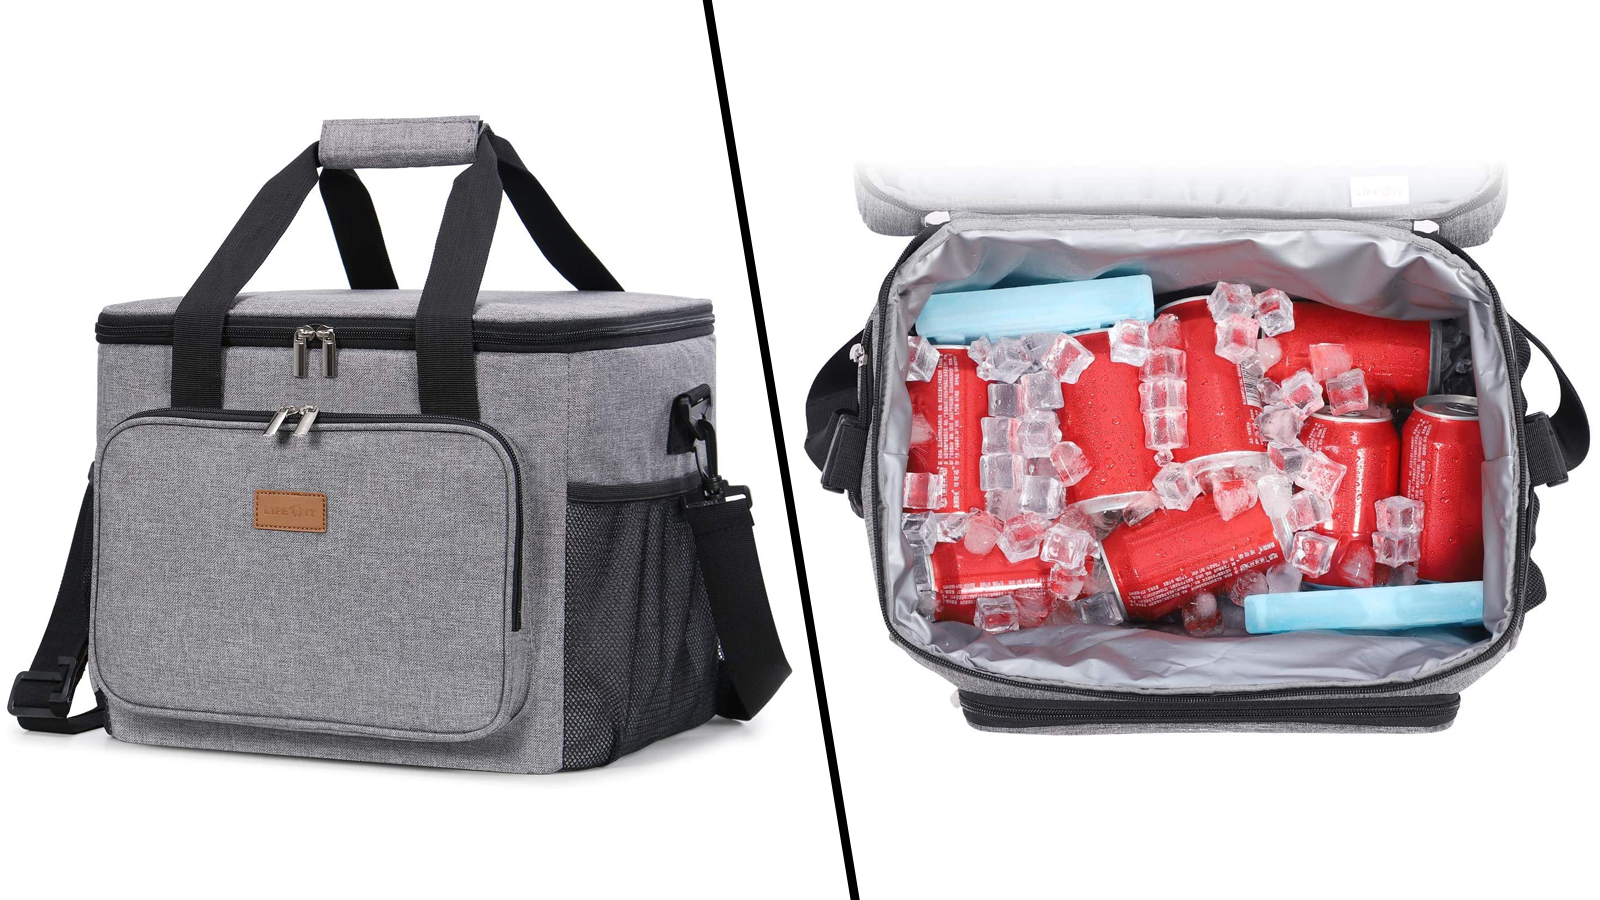 Don't Forget to Bring This Collapsible Insulated Cooler Bag on Your Next Picnic